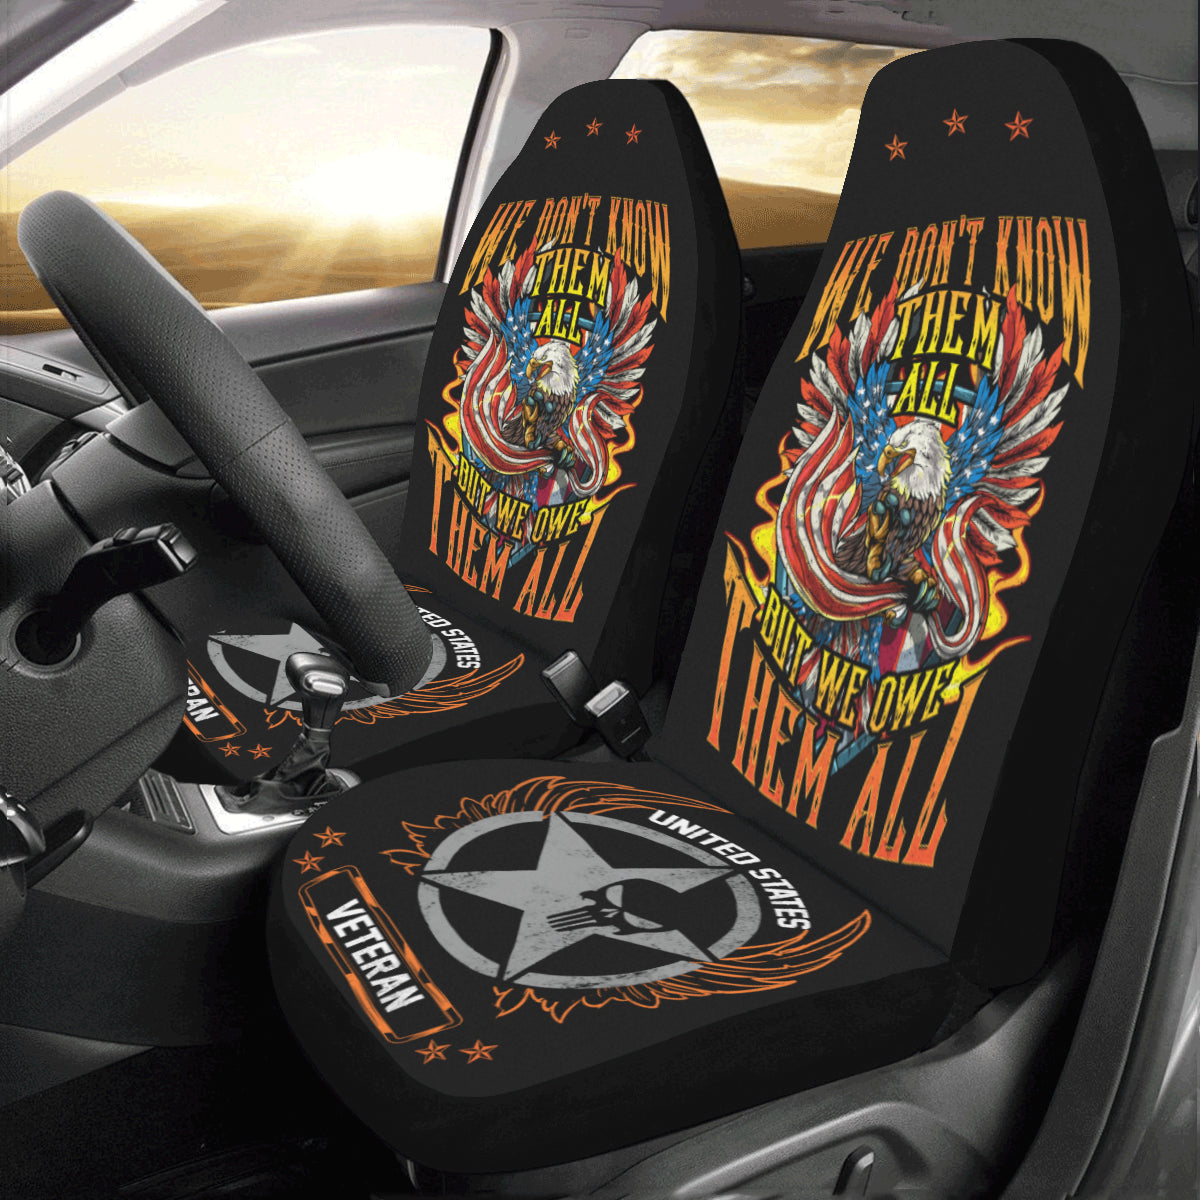 We Owe Them All Seat Covers